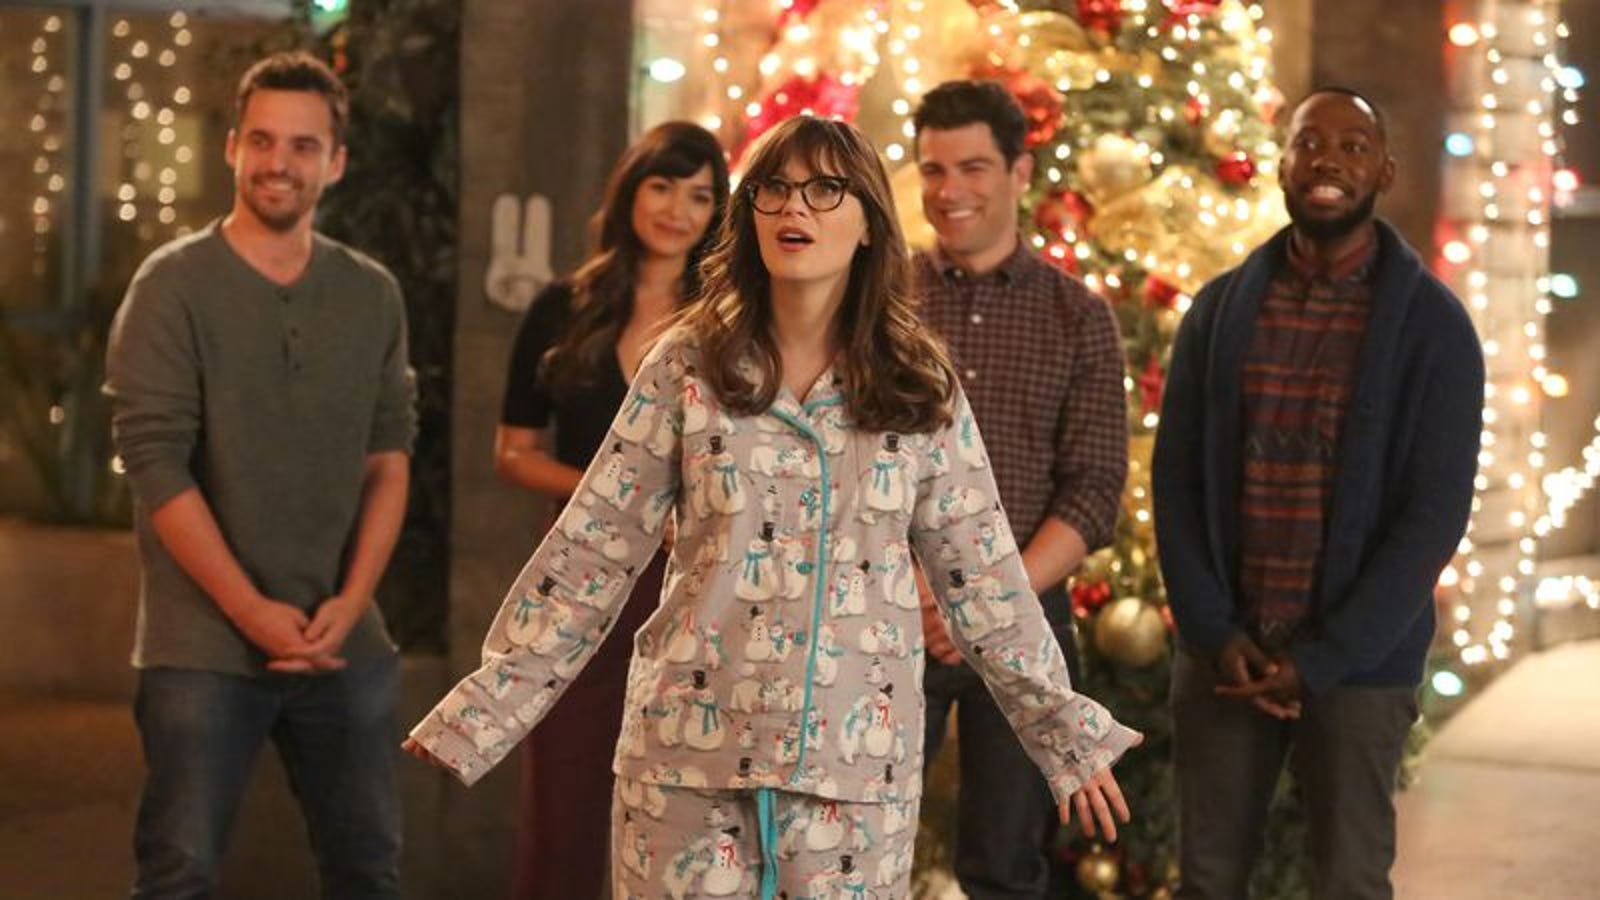 New Girl\'s Christmas is as sweet and clumsy as a gift from Nick Miller